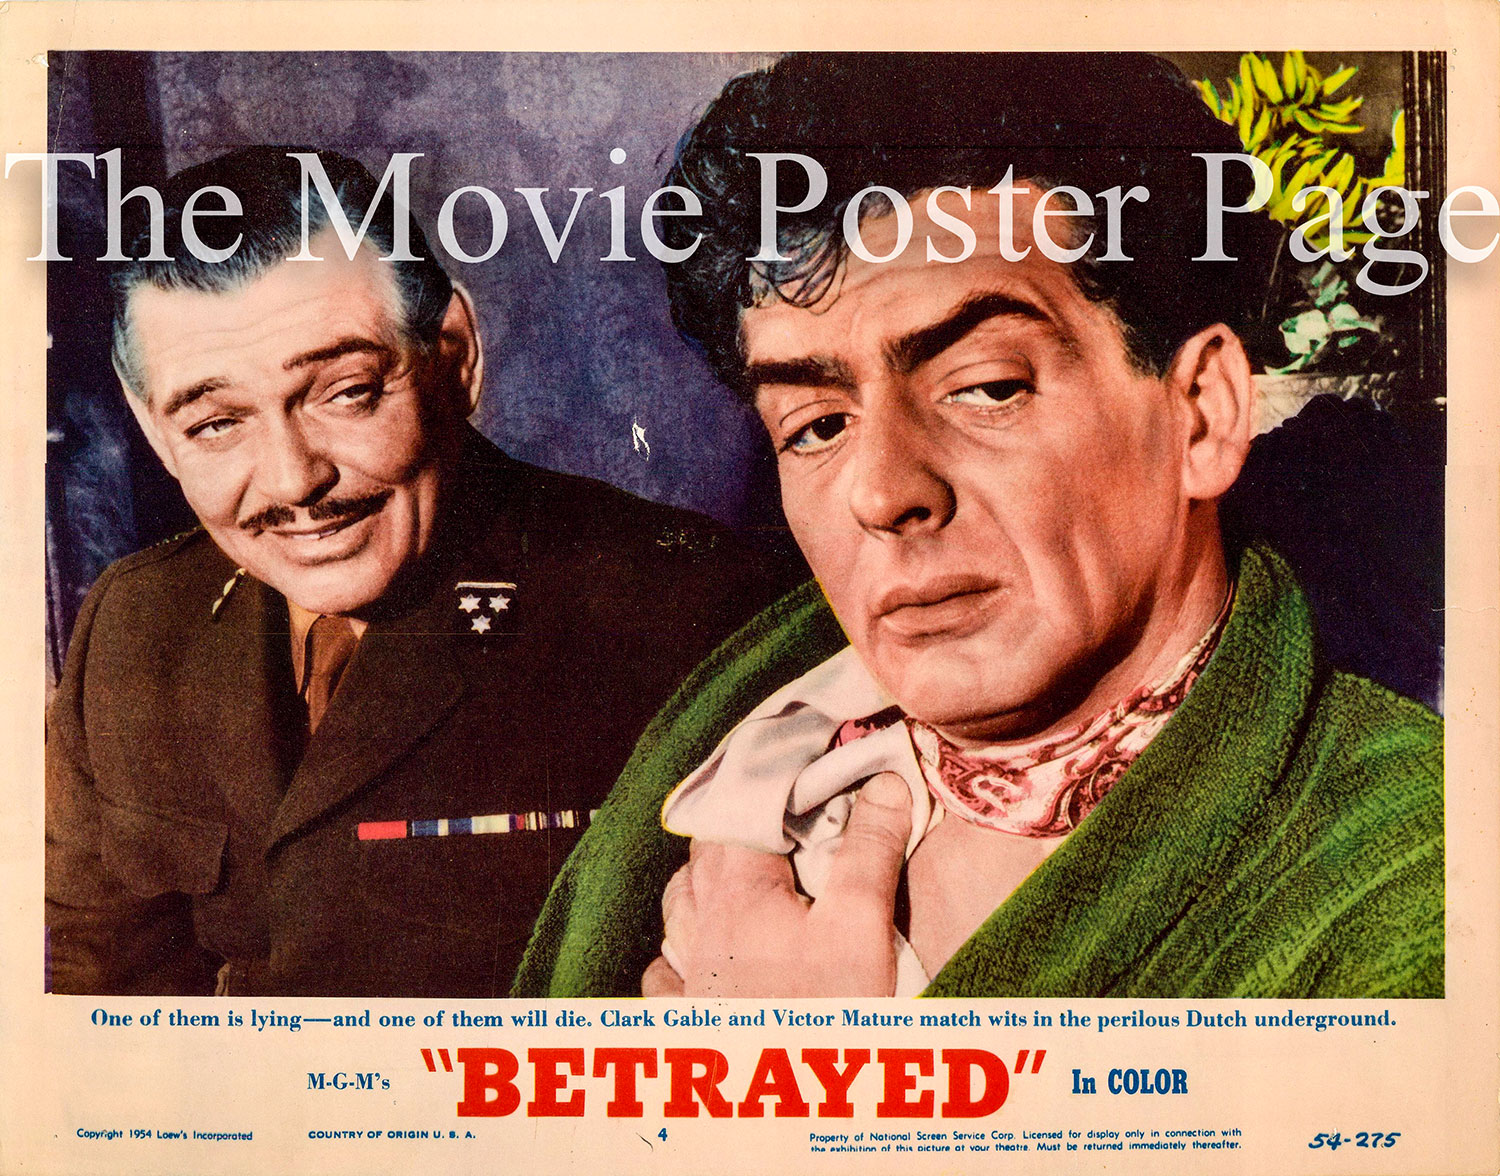 Pictured is a US lobby card for the 1954 Gottfried Reinhardt film Betrayed starring Clark Gable, Lana Turner and Victor Mature.